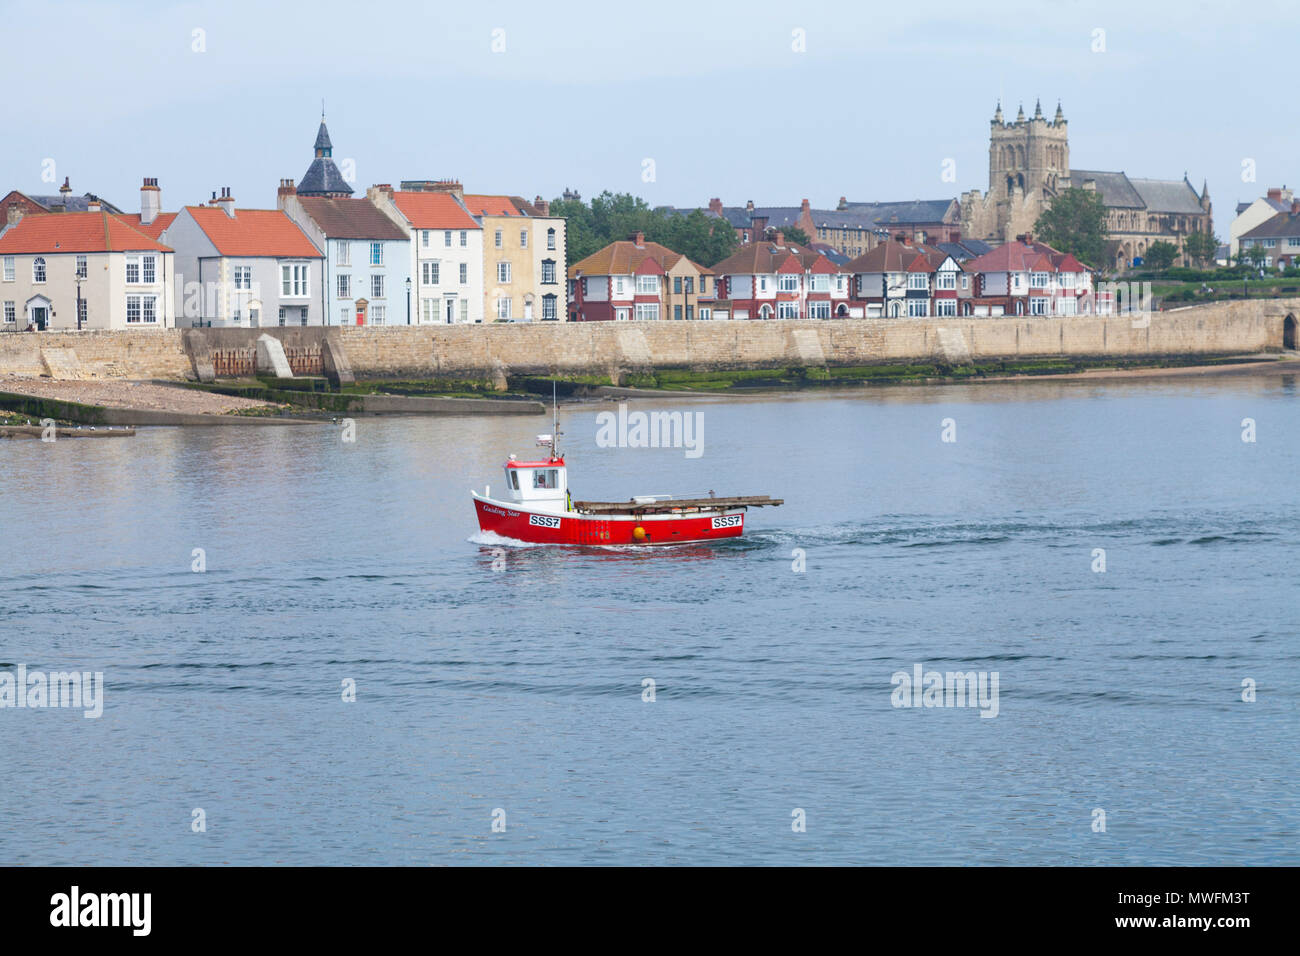 The headland at Old Hartlepool,England,UK with the Guiding Star boat heading into the port - Stock Image